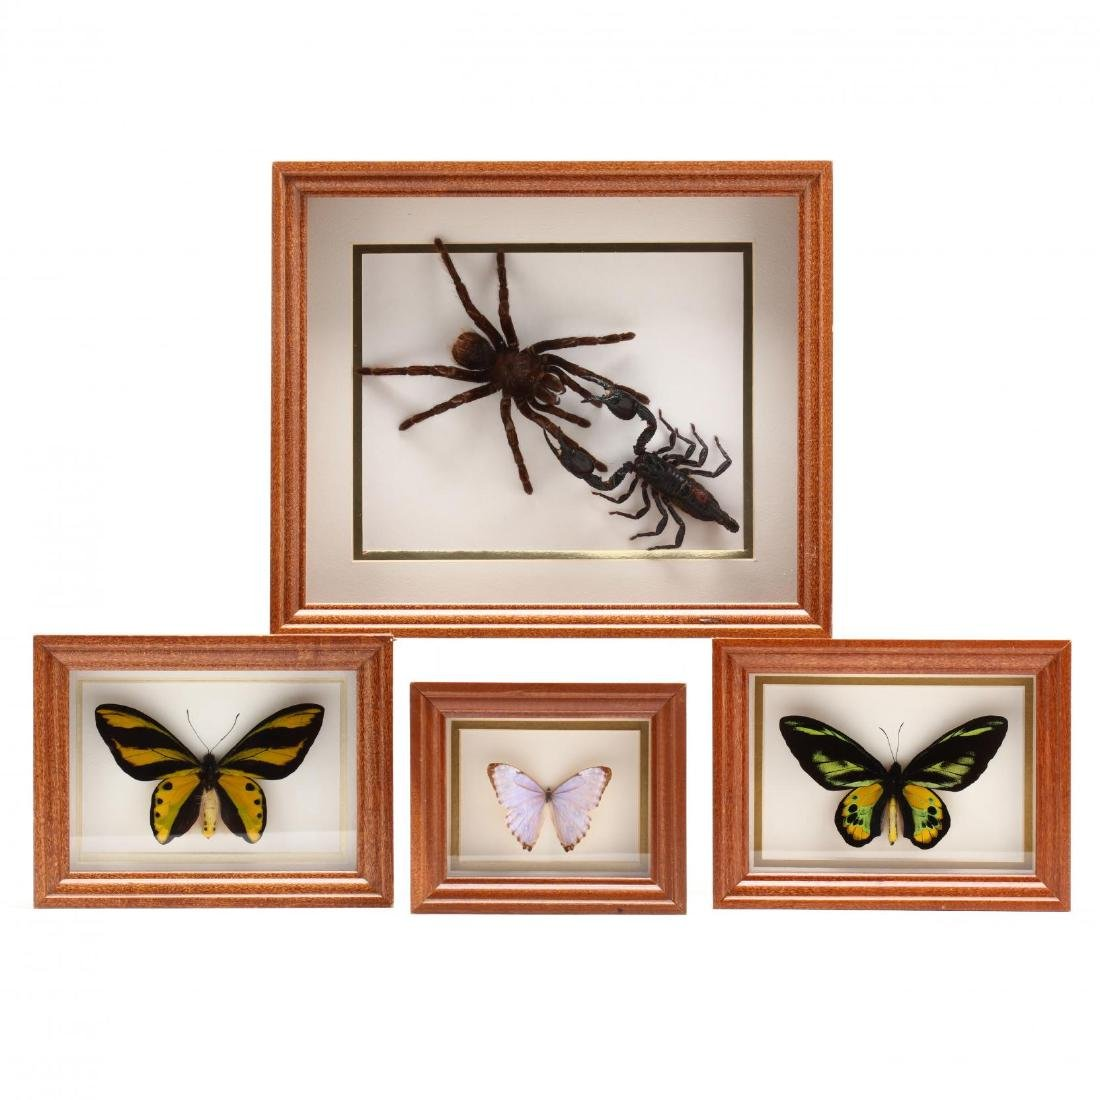 Four Insect Shadow Box Displays